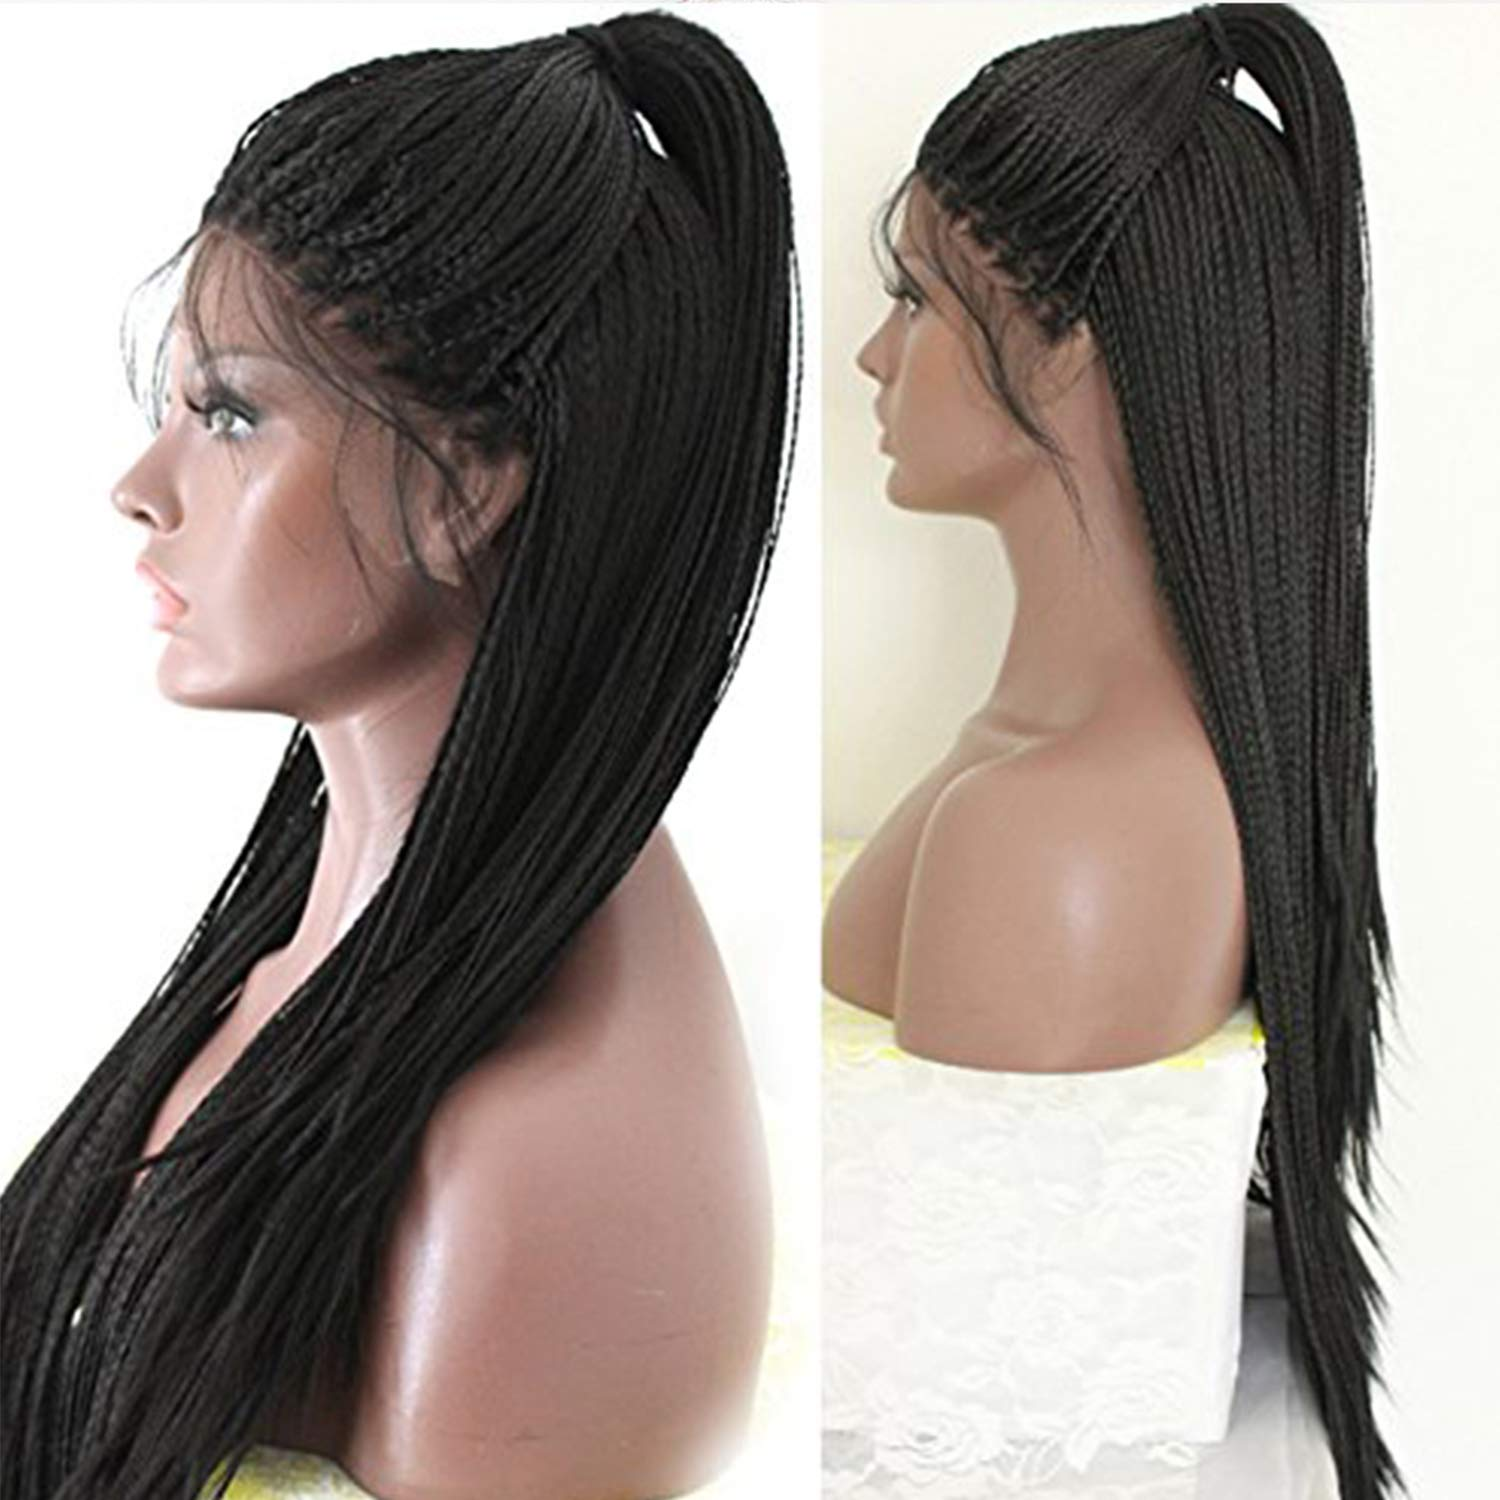 PlatinumHair Lace Front Wigs 24'' Long Braided Synthetic Wigs for Black Women Fully Hand Tied Braided Wig with Baby Hair Heat Resistant Black Color Micro Braids by PlatinumHair